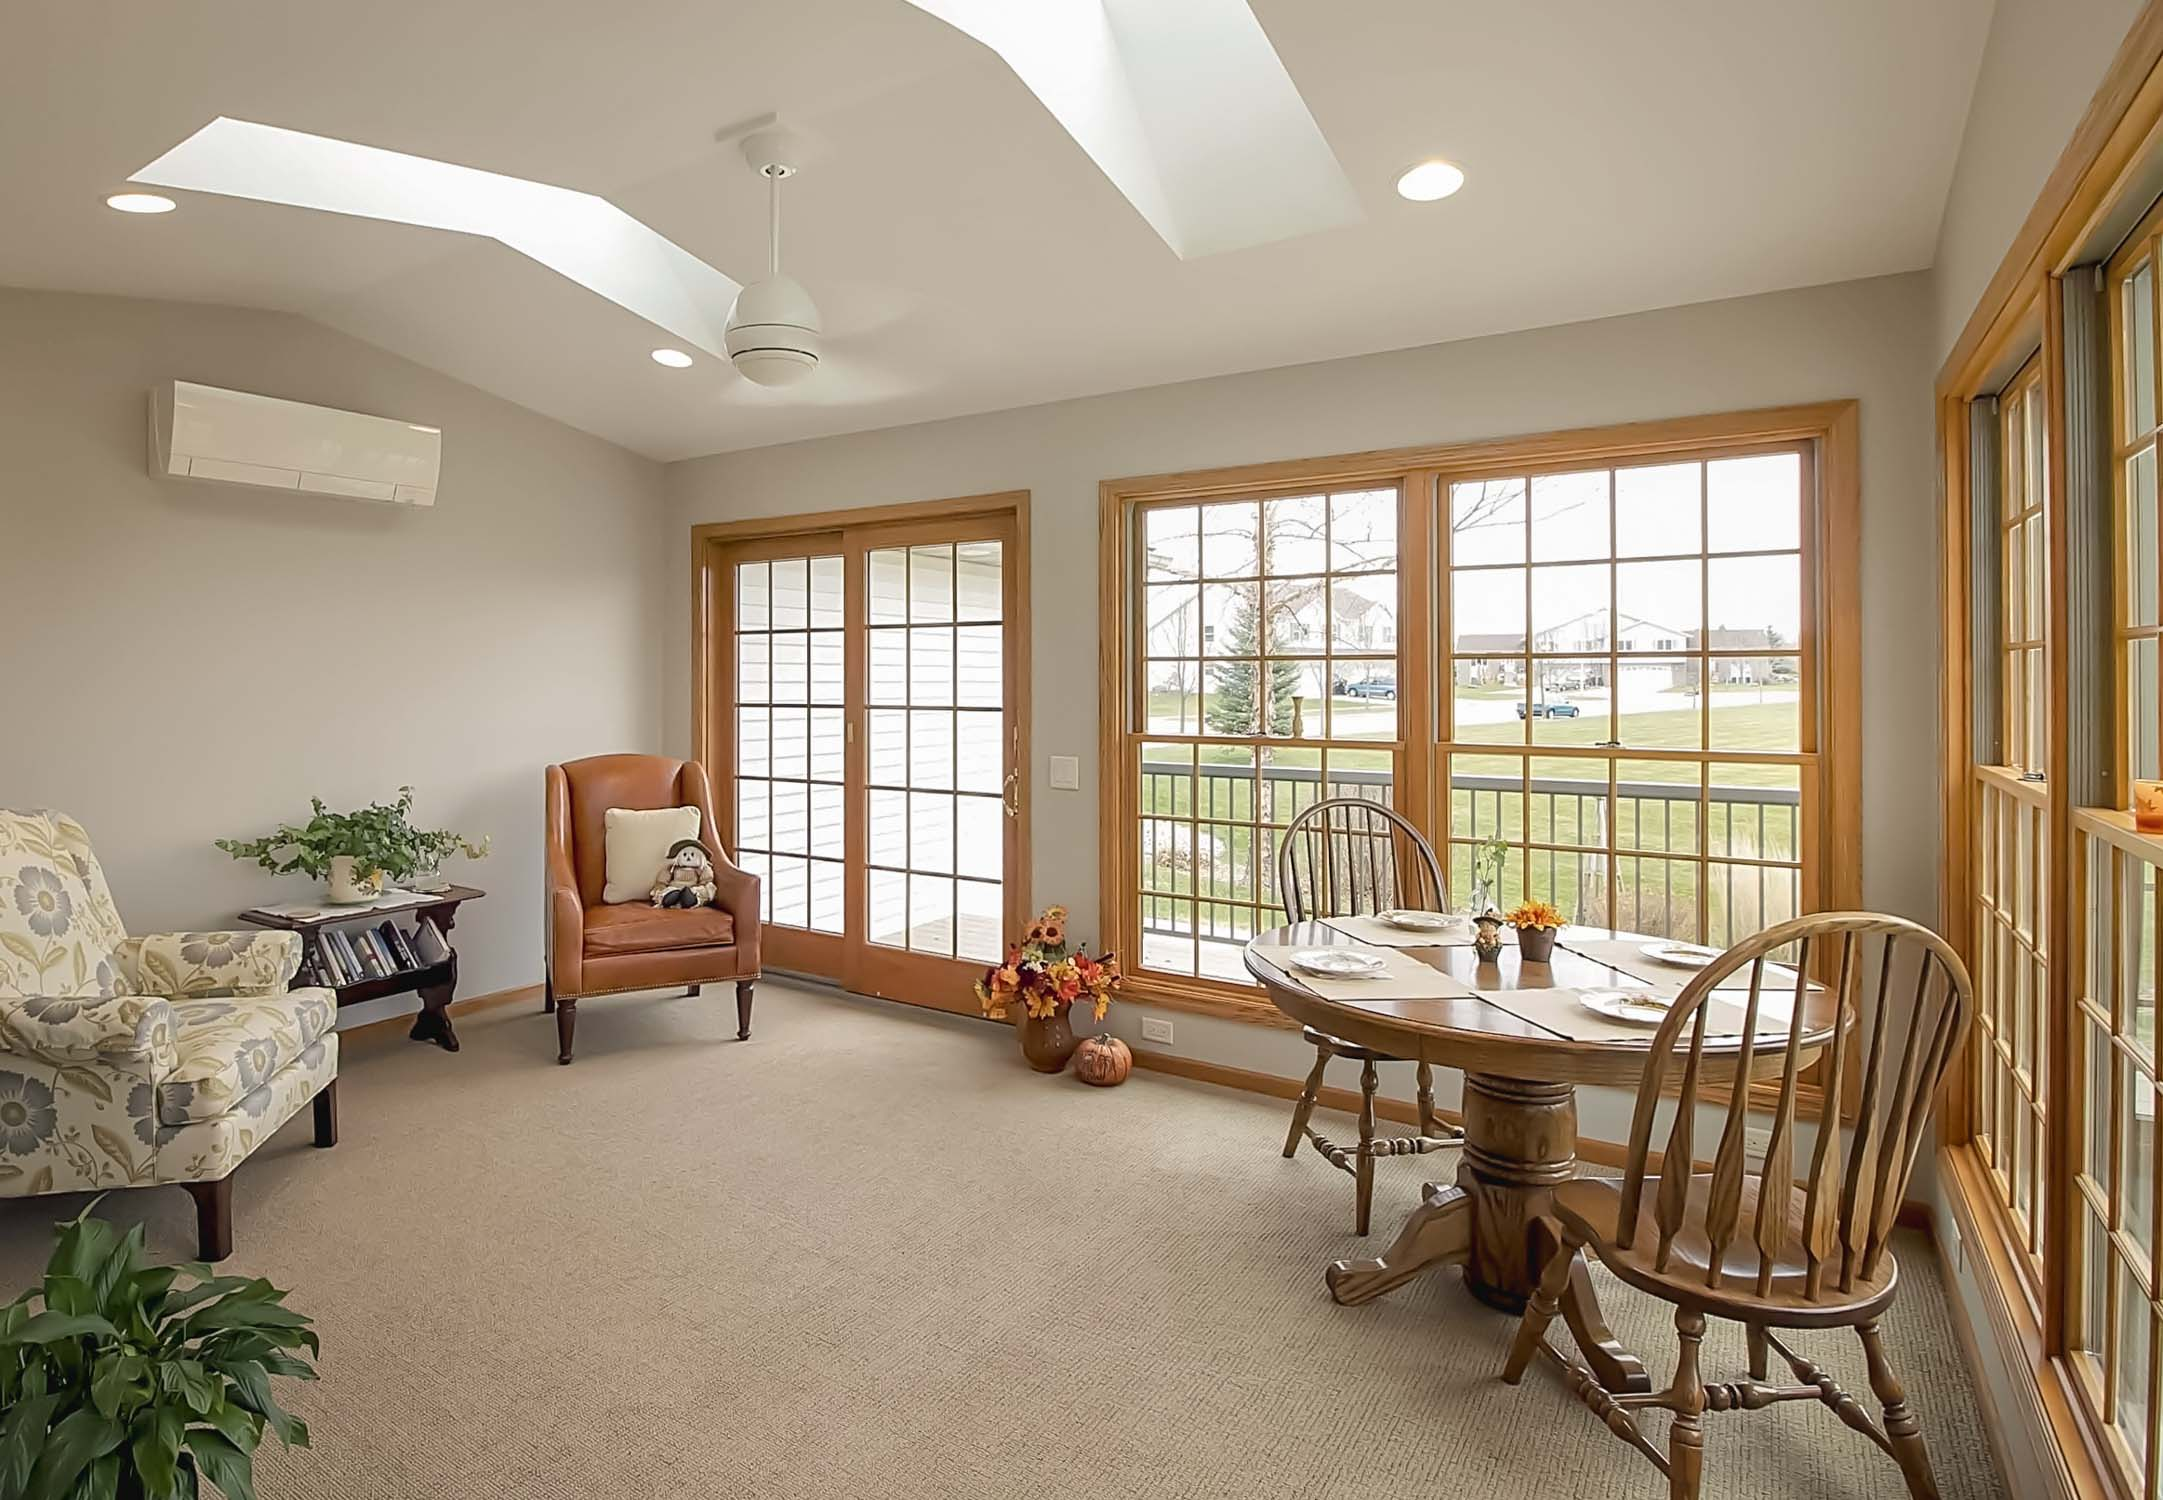 Exterior Deck and French Doors